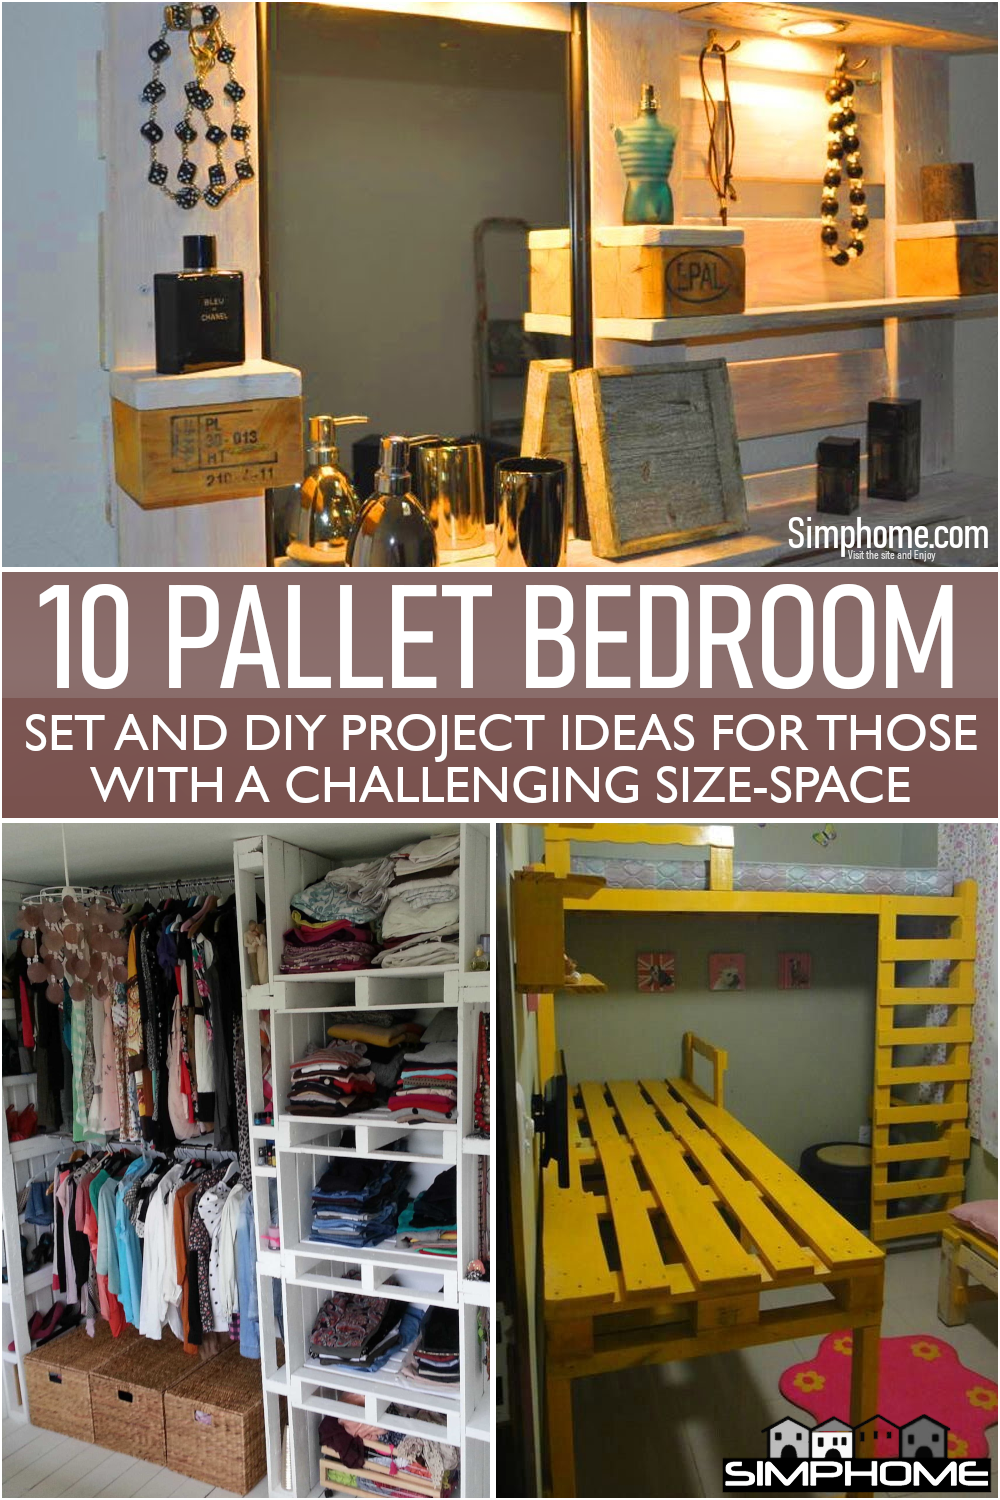 Learn more about 10 Pallet Bedroom Sets and DIY Project Ideas here